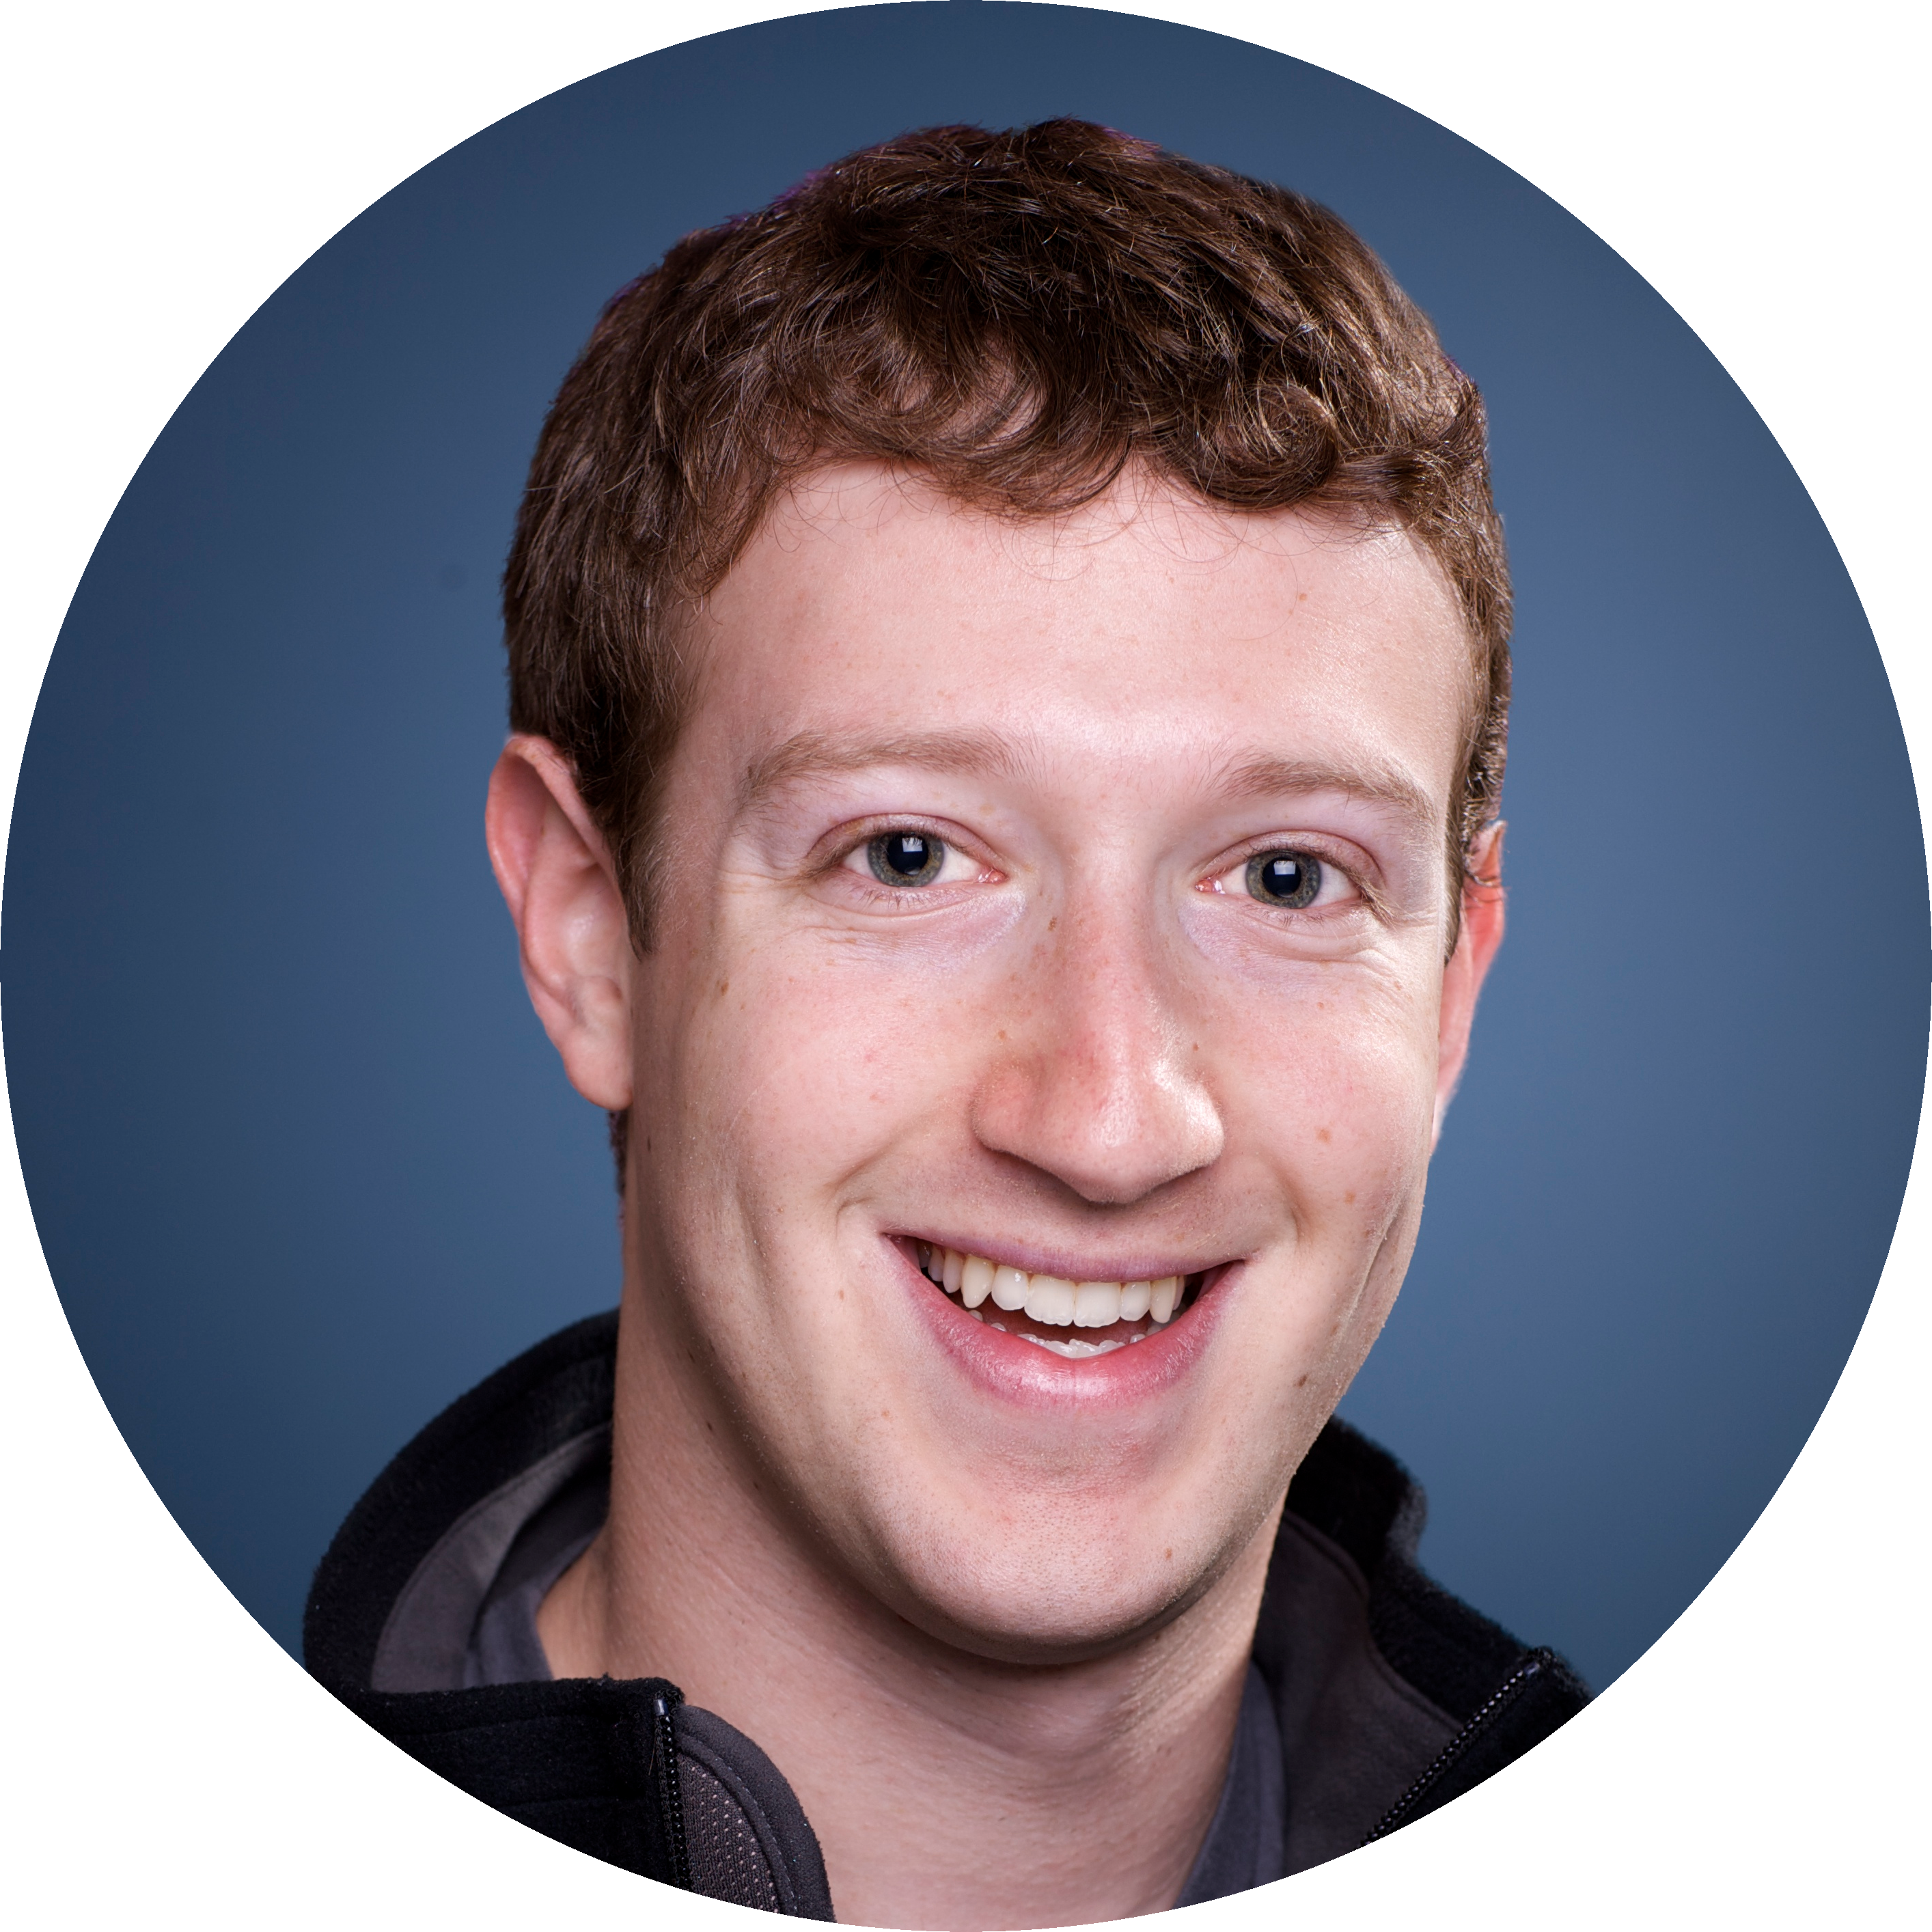 mark zuckerberg picture